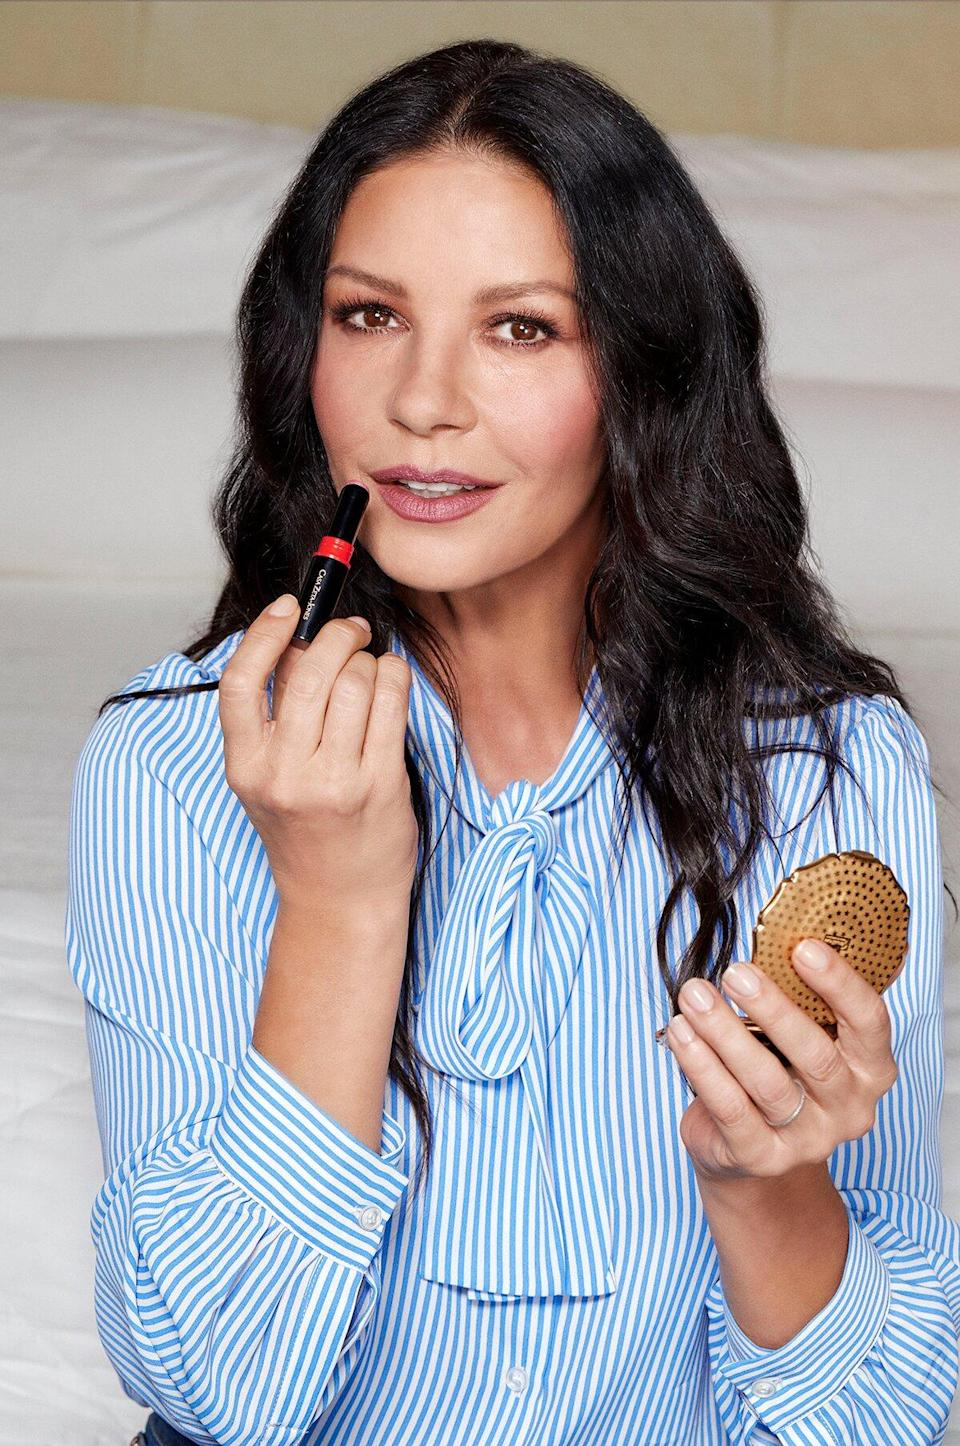 """<p>Casa Zeta-Jones is more than just a beauty brand; it's Catherine Zeta-Jones's full-blown lifestyle brand. (And yes, I will take one Catherine Zeta-Jones lifestyle to go, please.) But we're especially enamored with the makeup branch of the collection, created with the help of Wunder2. It actually makes sense that this color-cosmetics line has a limited selection of shades because they're shades you can actually picture Zeta-Jones wearing to create that signature sultry look of hers.</p> <p><strong>Star product:</strong> """"<a href=""""https://shop-links.co/1747507818929327010"""" rel=""""nofollow noopener"""" target=""""_blank"""" data-ylk=""""slk:My Mascara"""" class=""""link rapid-noclick-resp"""">My Mascara</a> ($24) immediately proved itself to be a <a href=""""https://www.allure.com/story/catherine-zeta-jones-makeup-brand-eye-pencil-mascara-review?mbid=synd_yahoo_rss"""" rel=""""nofollow noopener"""" target=""""_blank"""" data-ylk=""""slk:great everyday mascara"""" class=""""link rapid-noclick-resp"""">great everyday mascara</a> for anyone who wants a bit more than the bare minimum from their everyday mascara,"""" says <em>Allure</em> contributing editor Marci Robin.</p>"""